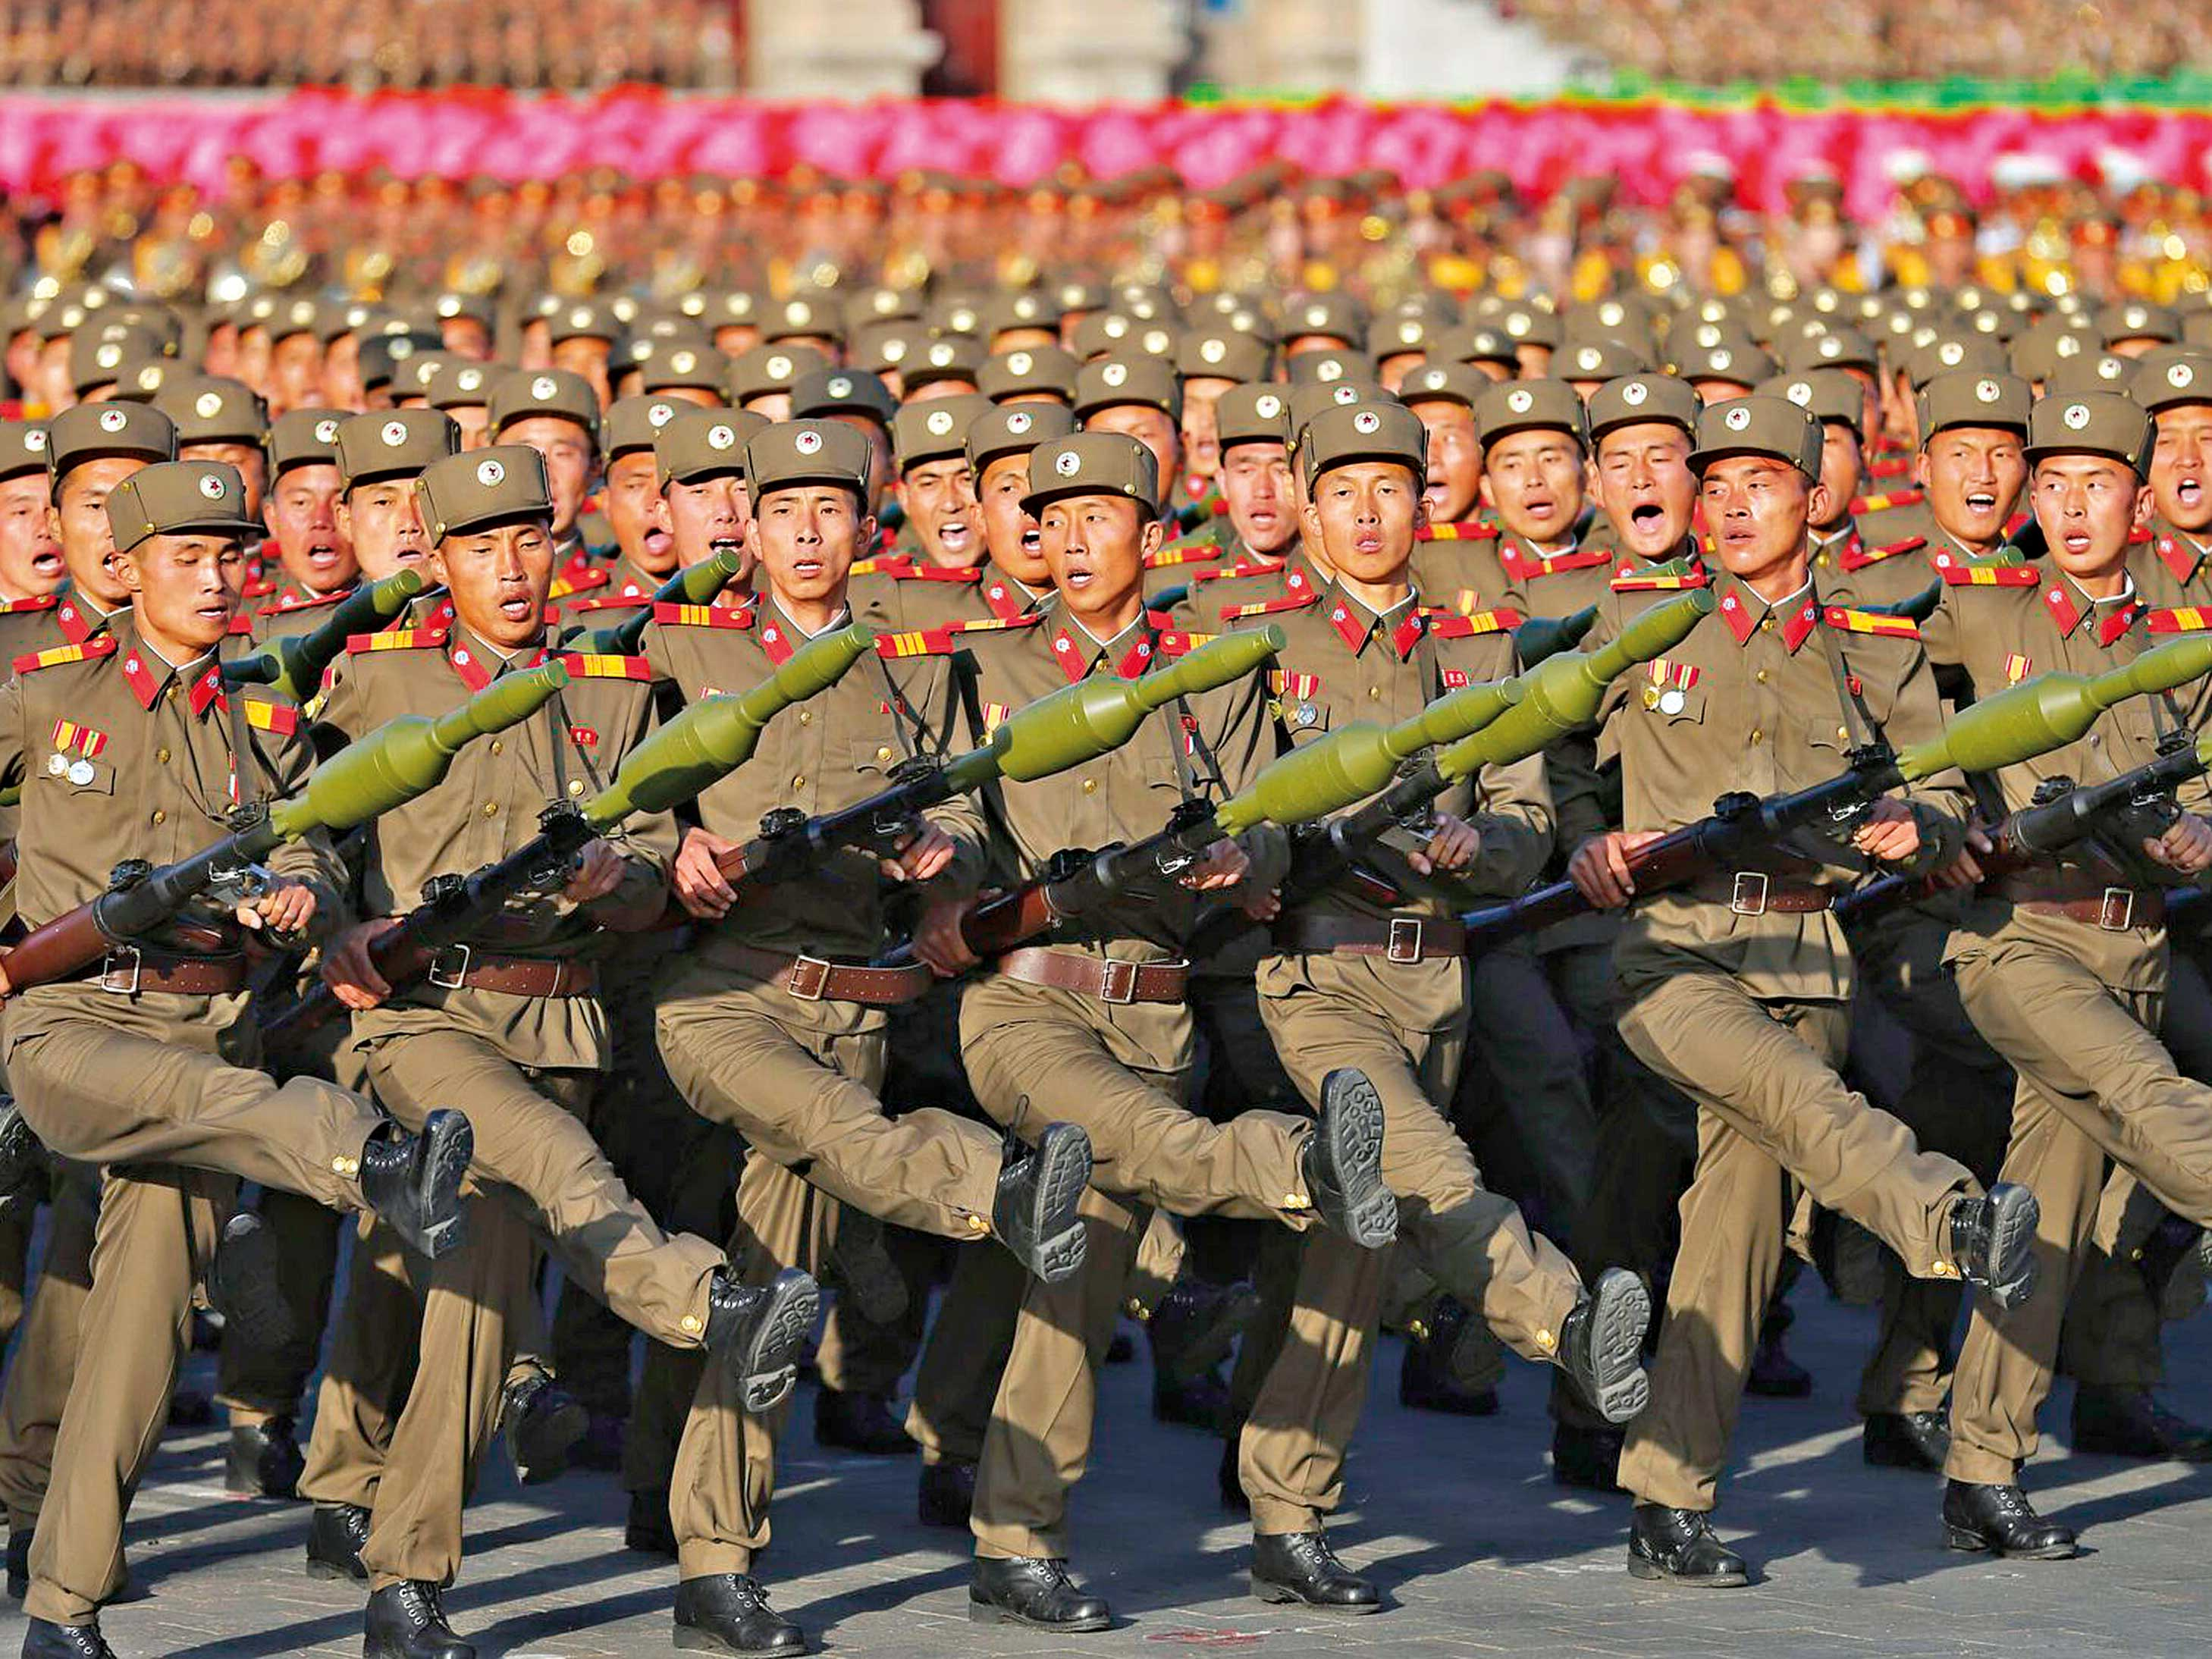 The North Korean army displays its infamous goose step march